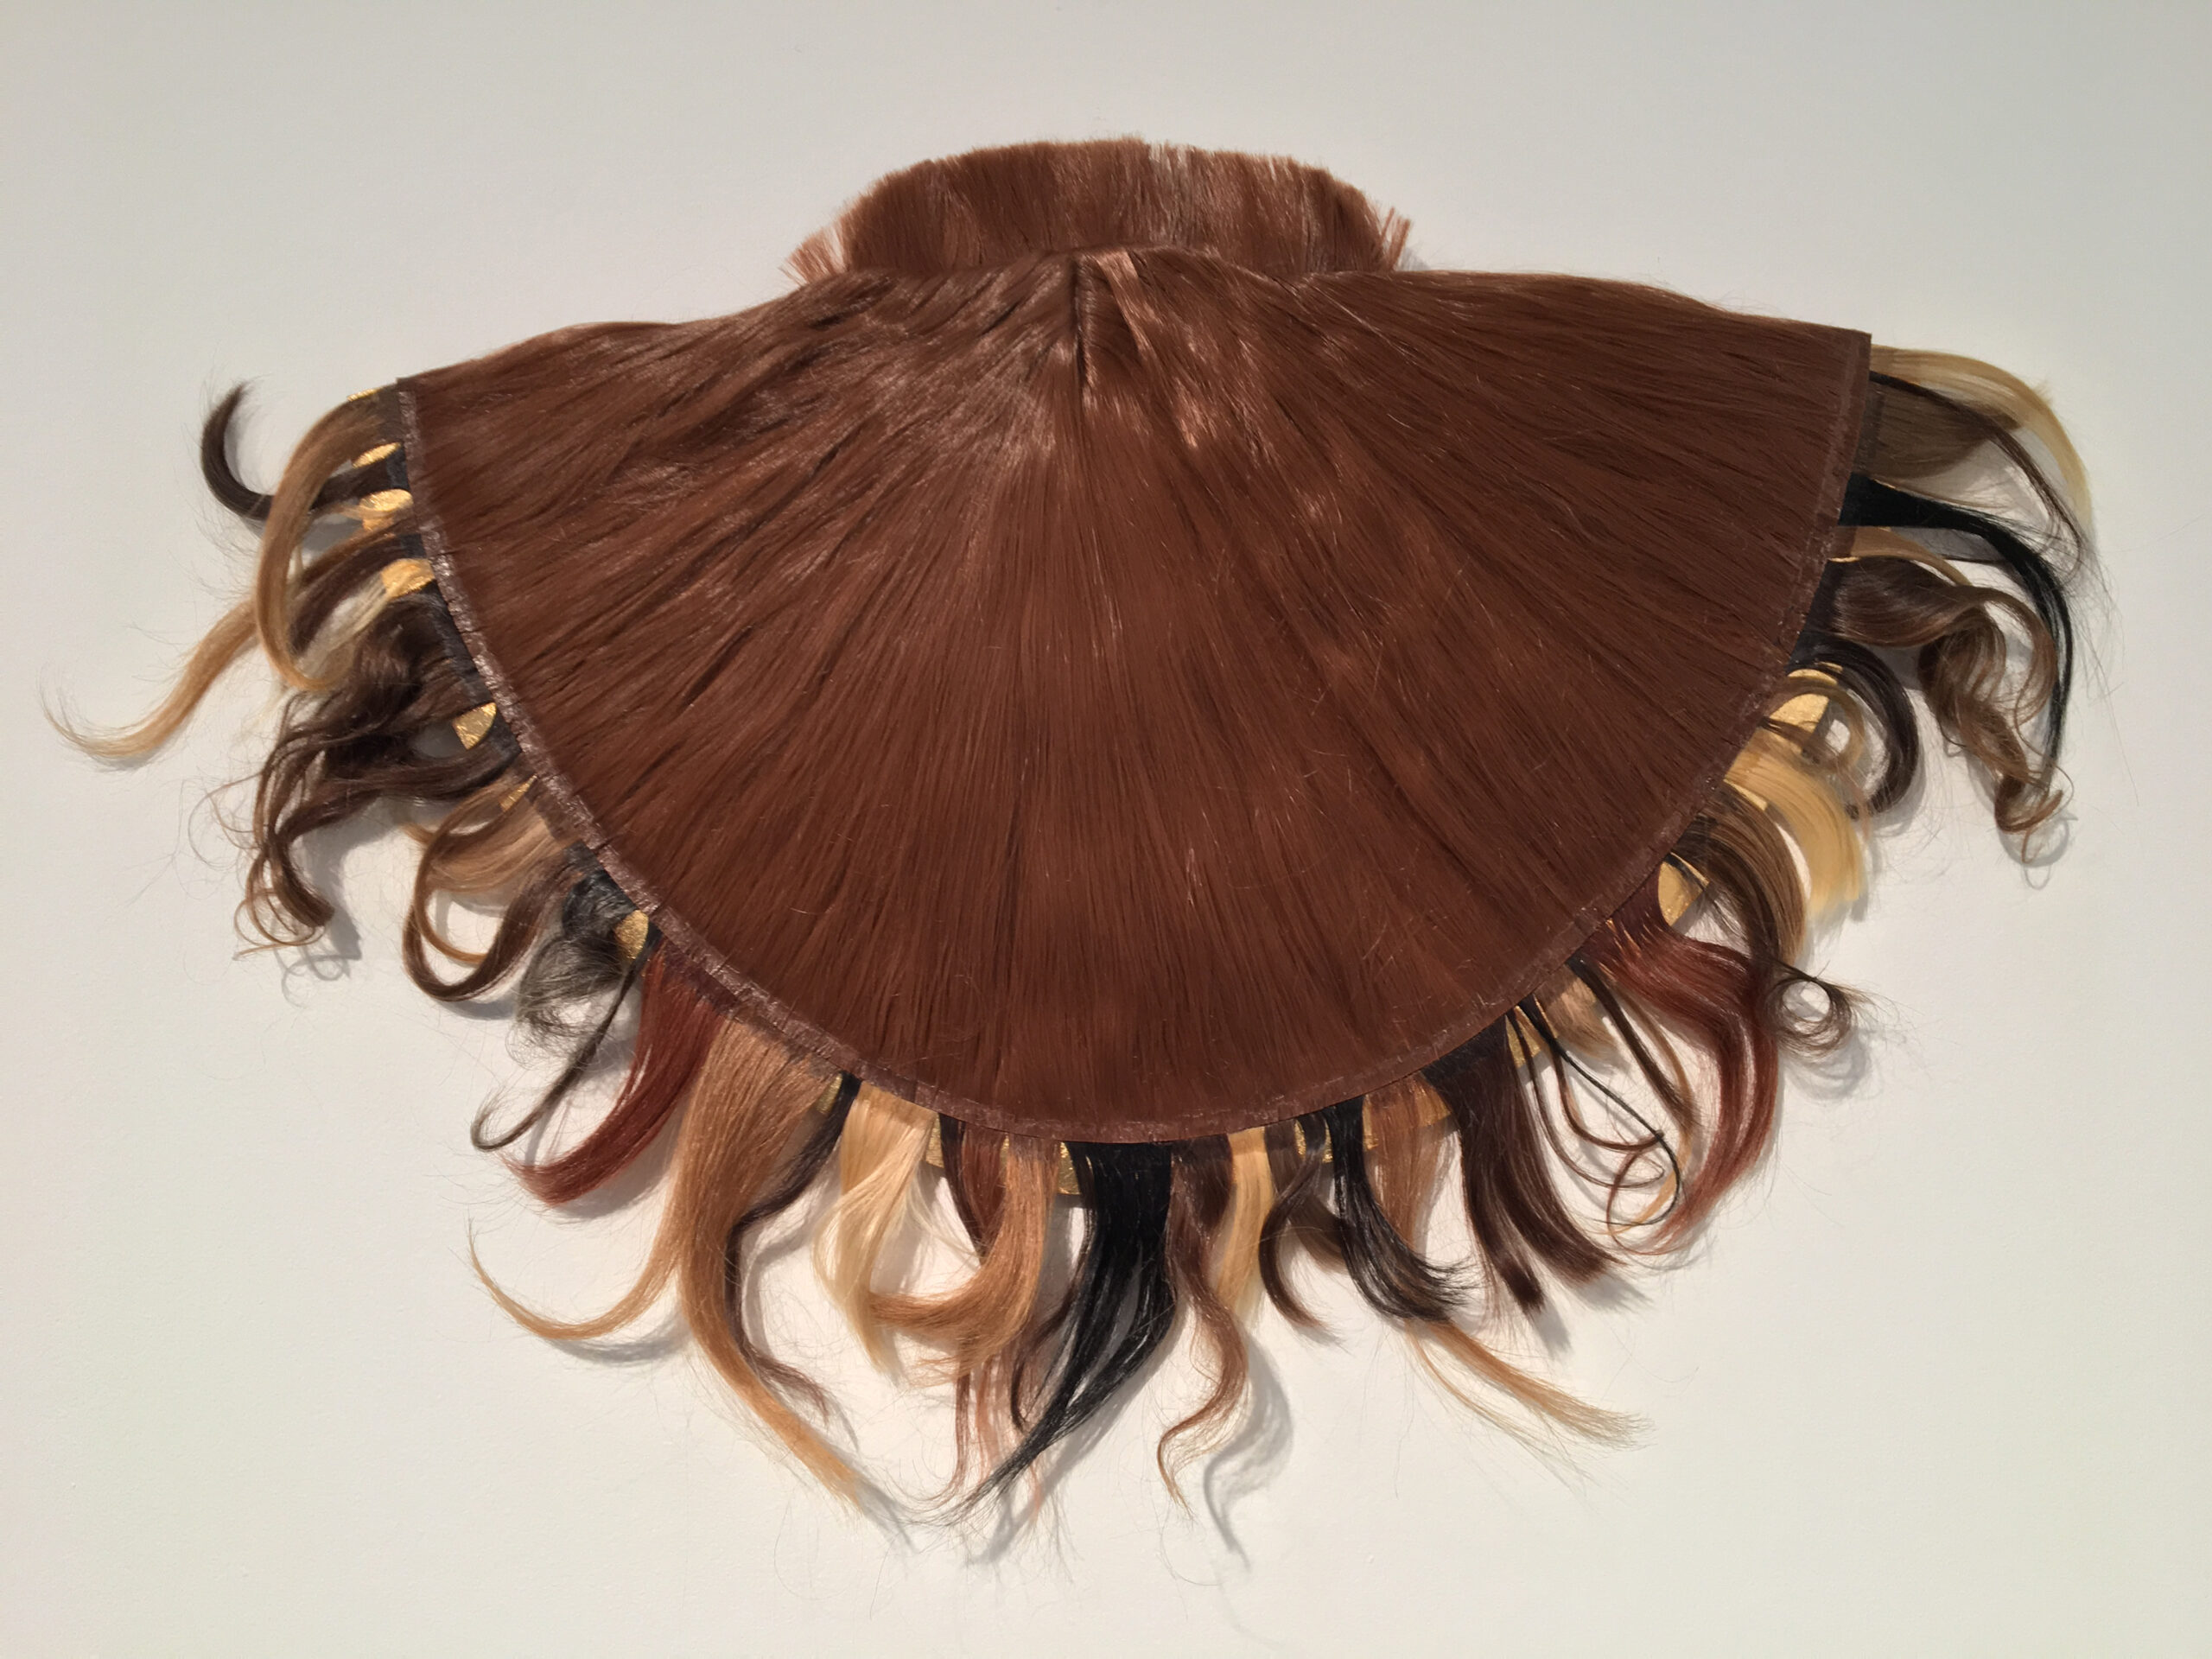 Procession (2016) Altered wig and 47 locks of human hair